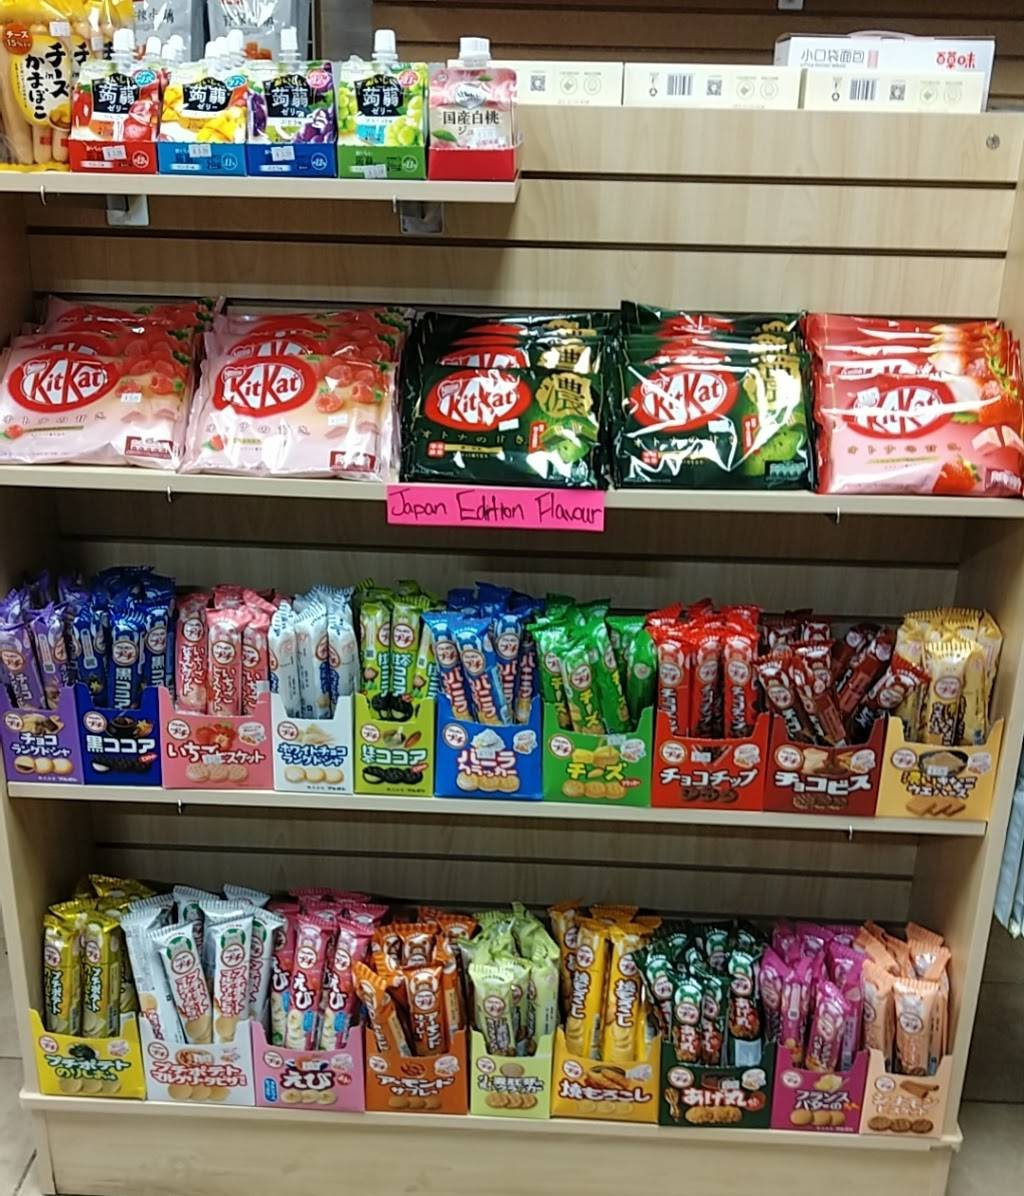 MOMOKO Snacks Land | meal takeaway | 104-75 Dalhousie St, Brantford, ON N3T 2J1, Canada | 5197560265 OR +1 519-756-0265